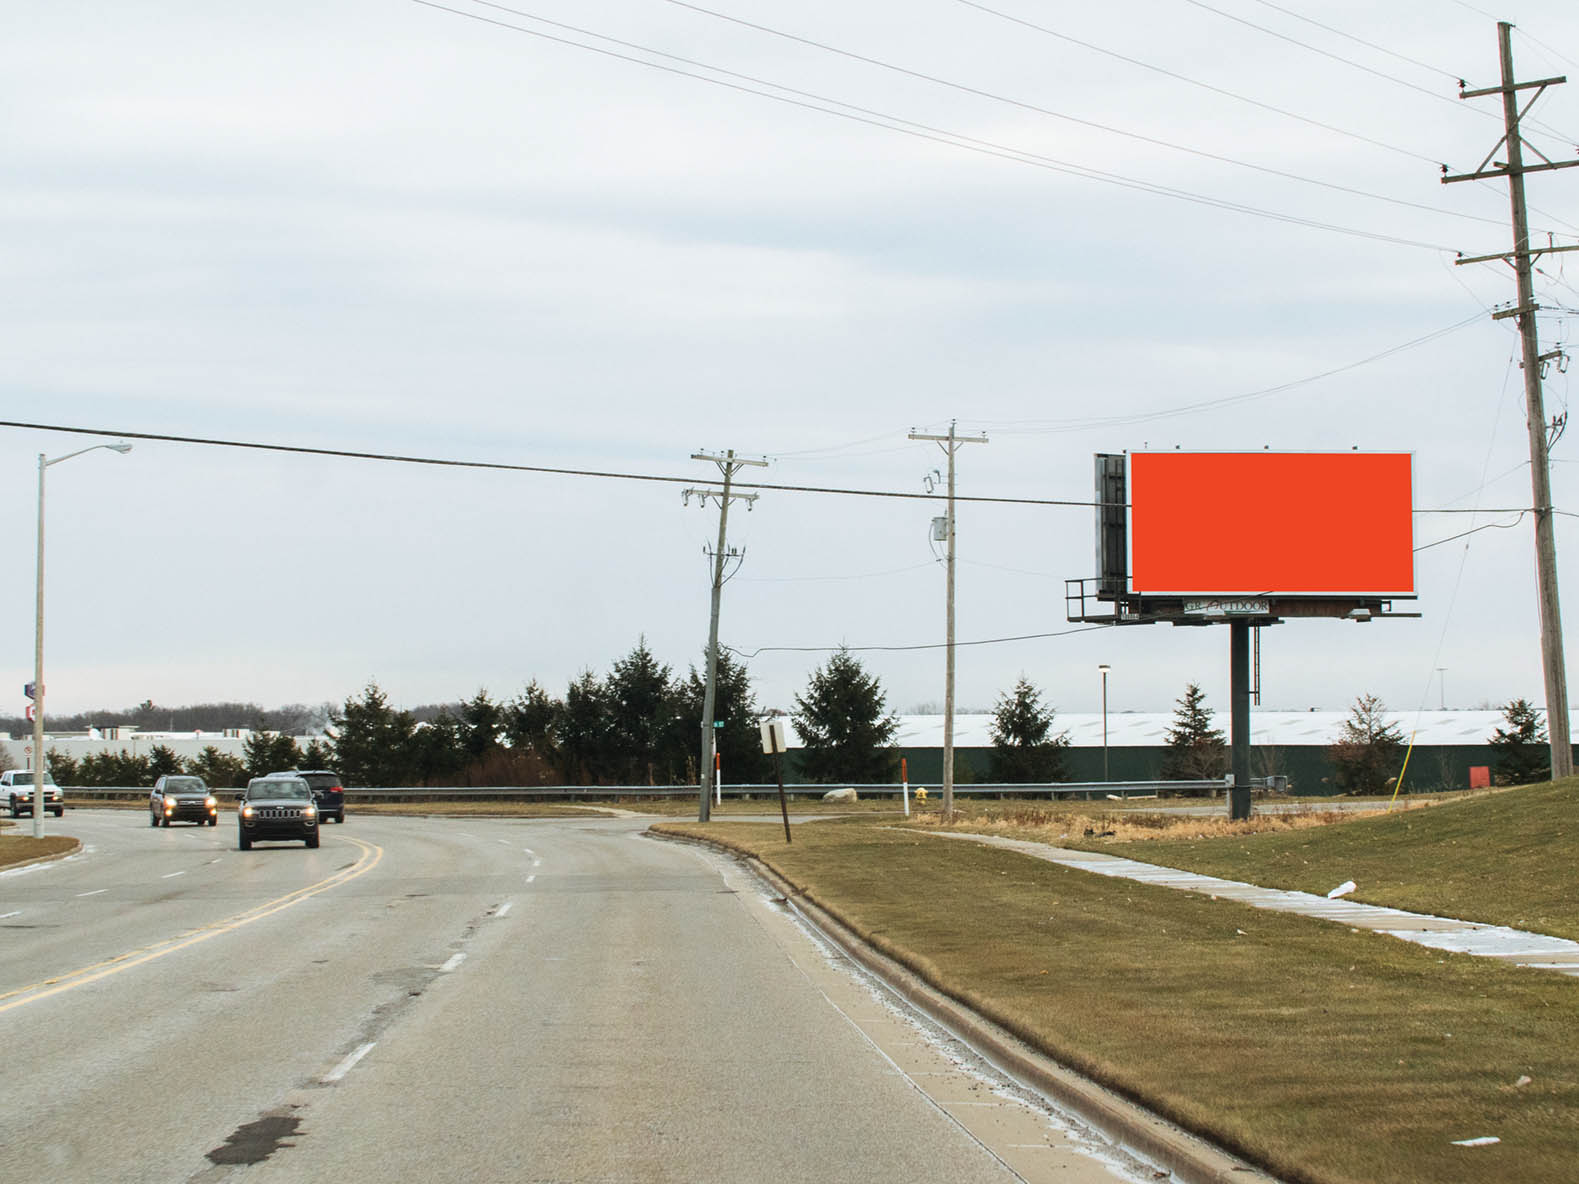 Billboard 401 West (12 x 25) - Geopath: 30655459